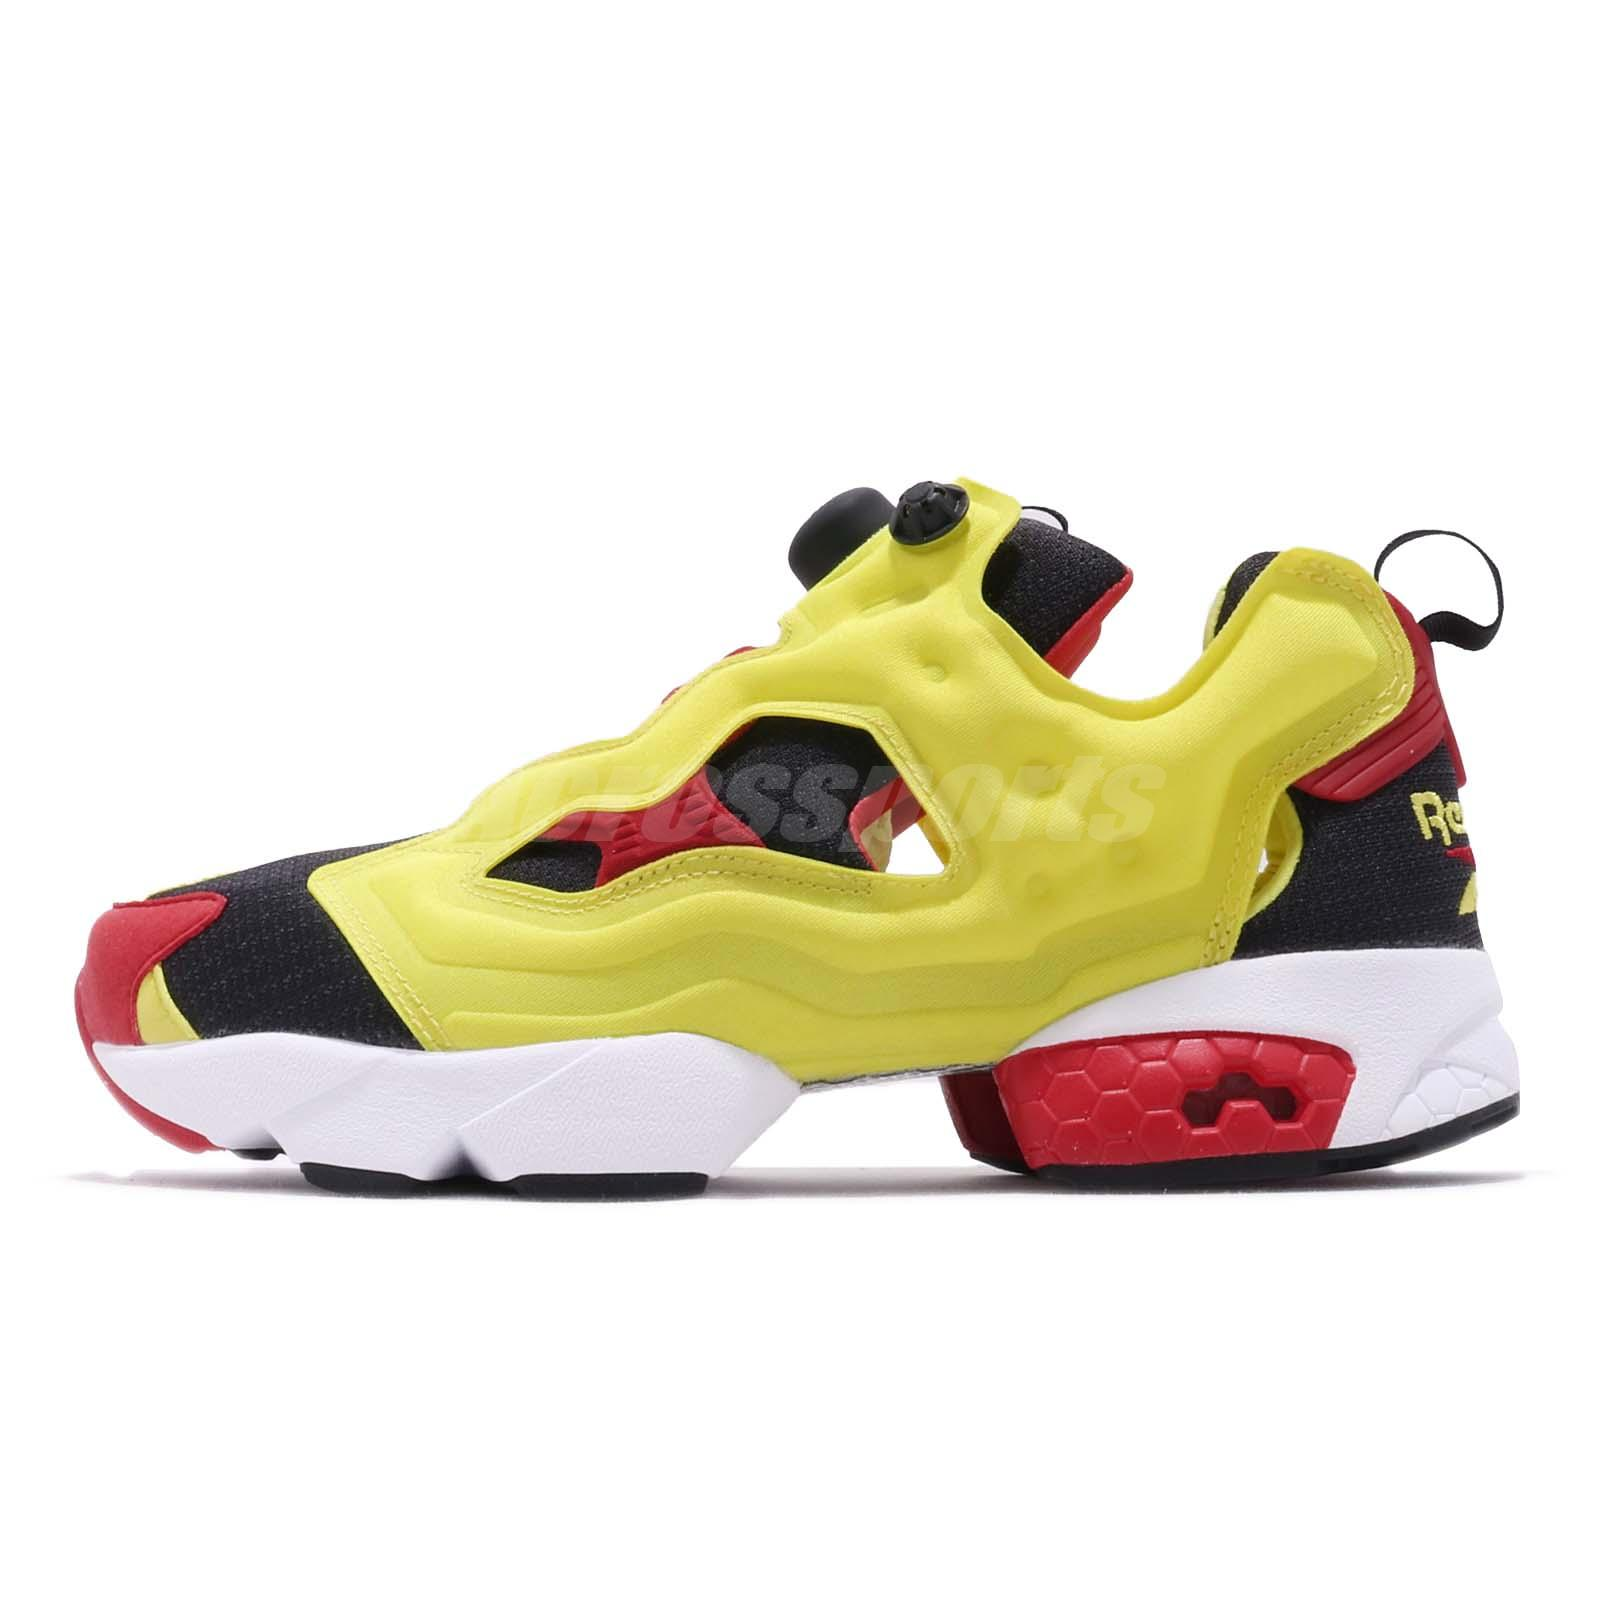 size 40 c7afd ba8ce ... norway reebok insta pump fury og citron yellow black red 2019 classic  sneakers v47514 bffab 11cf7